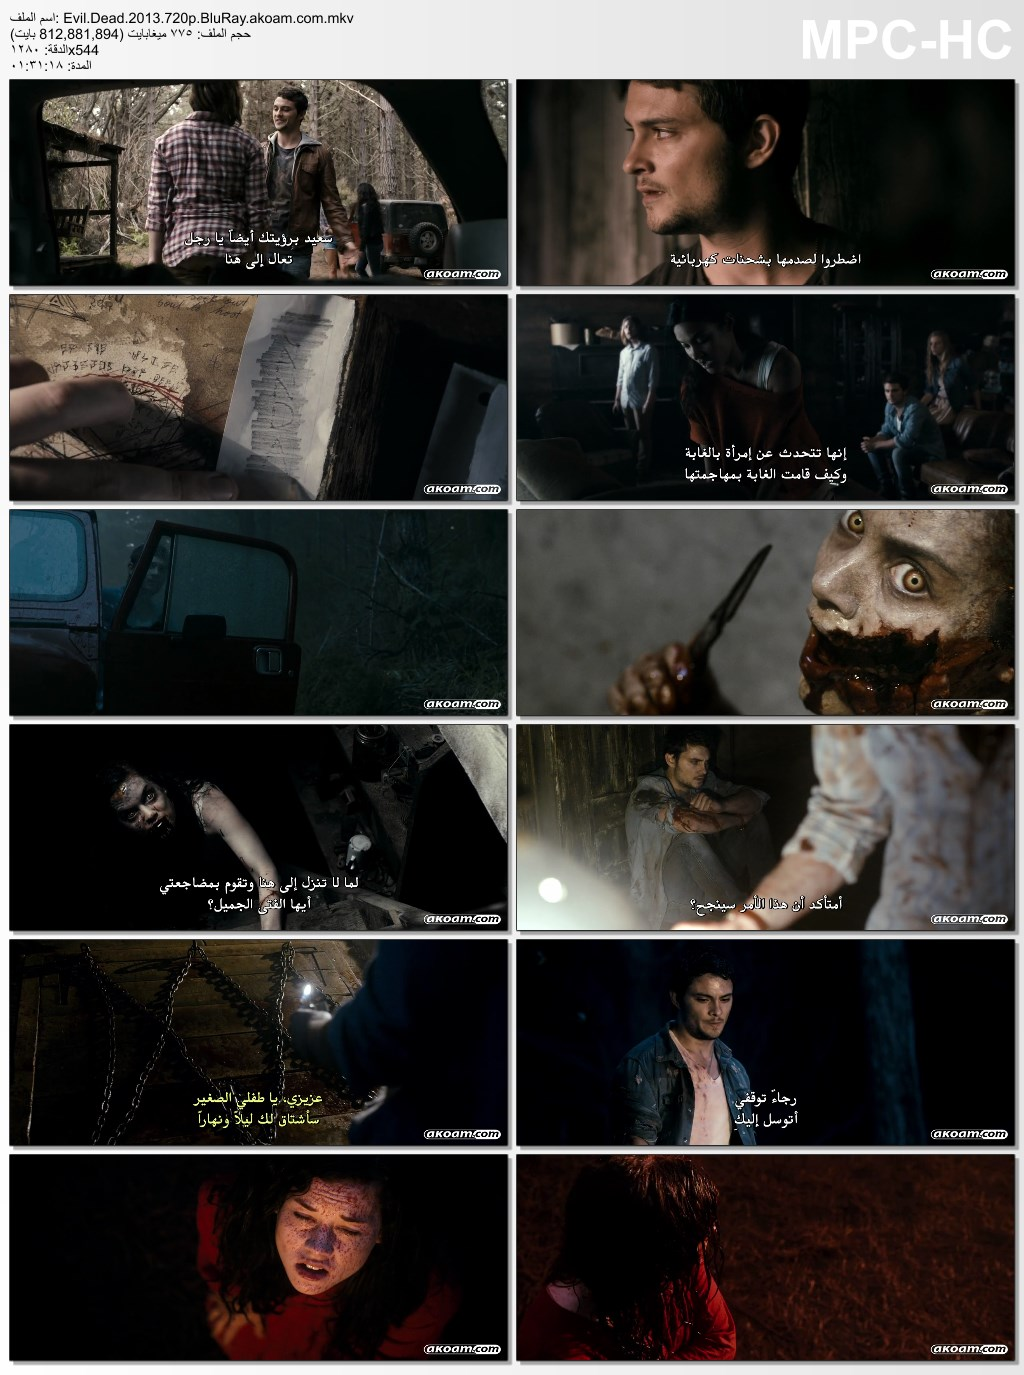 The Evil Dead,الميت الشرير,The Evil Dead 1981,Evil Dead II,Army Of Darkness,Evil Dead 2013